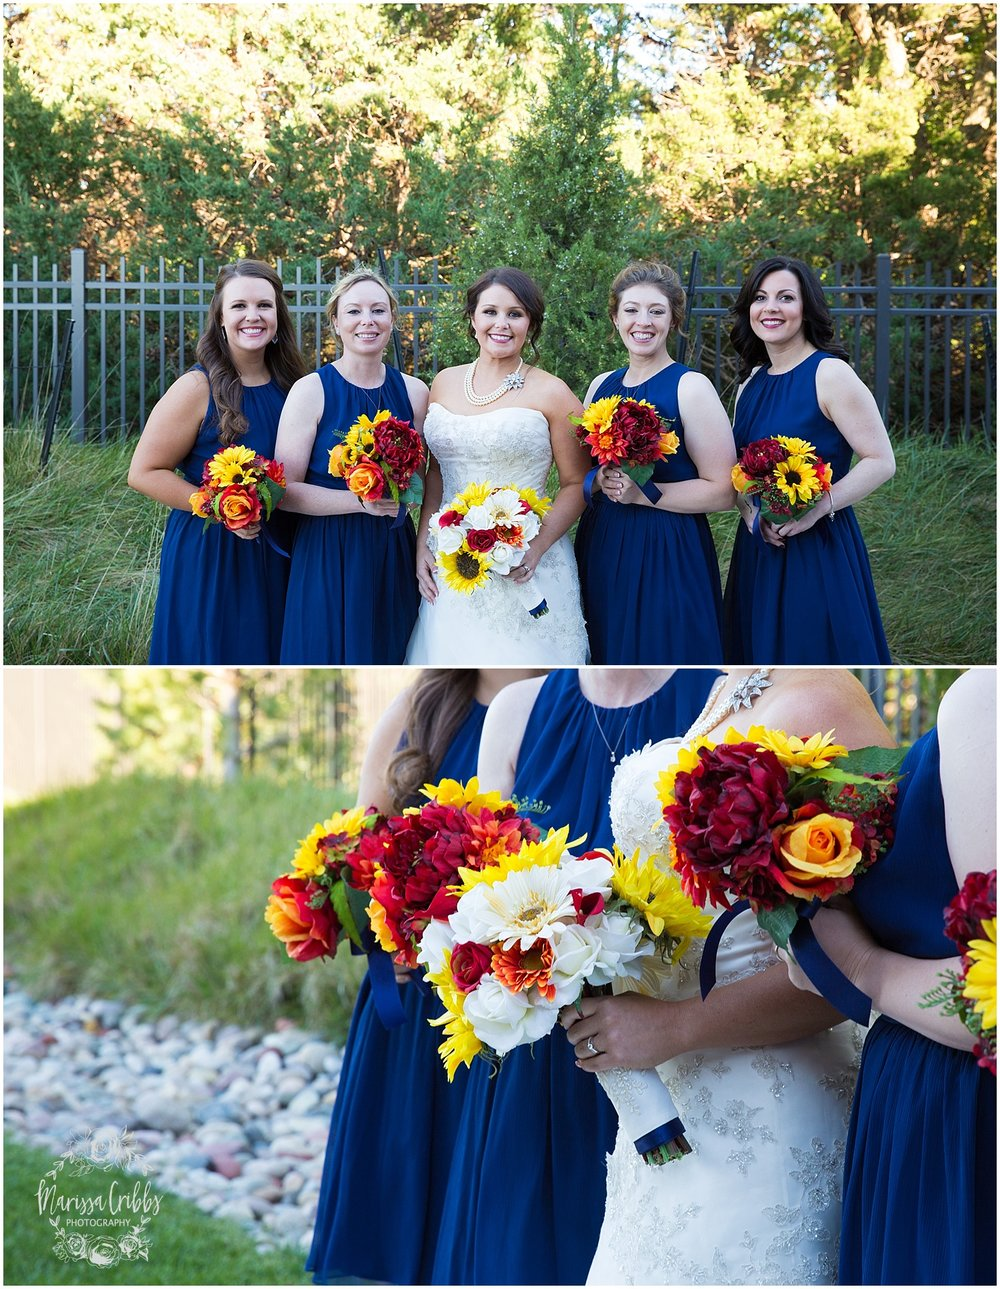 Sarah & Troy | Wichita KS Wedding Photography | Noah's Event Venue Wichita | Marissa Cribbs Photography_1020.jpg